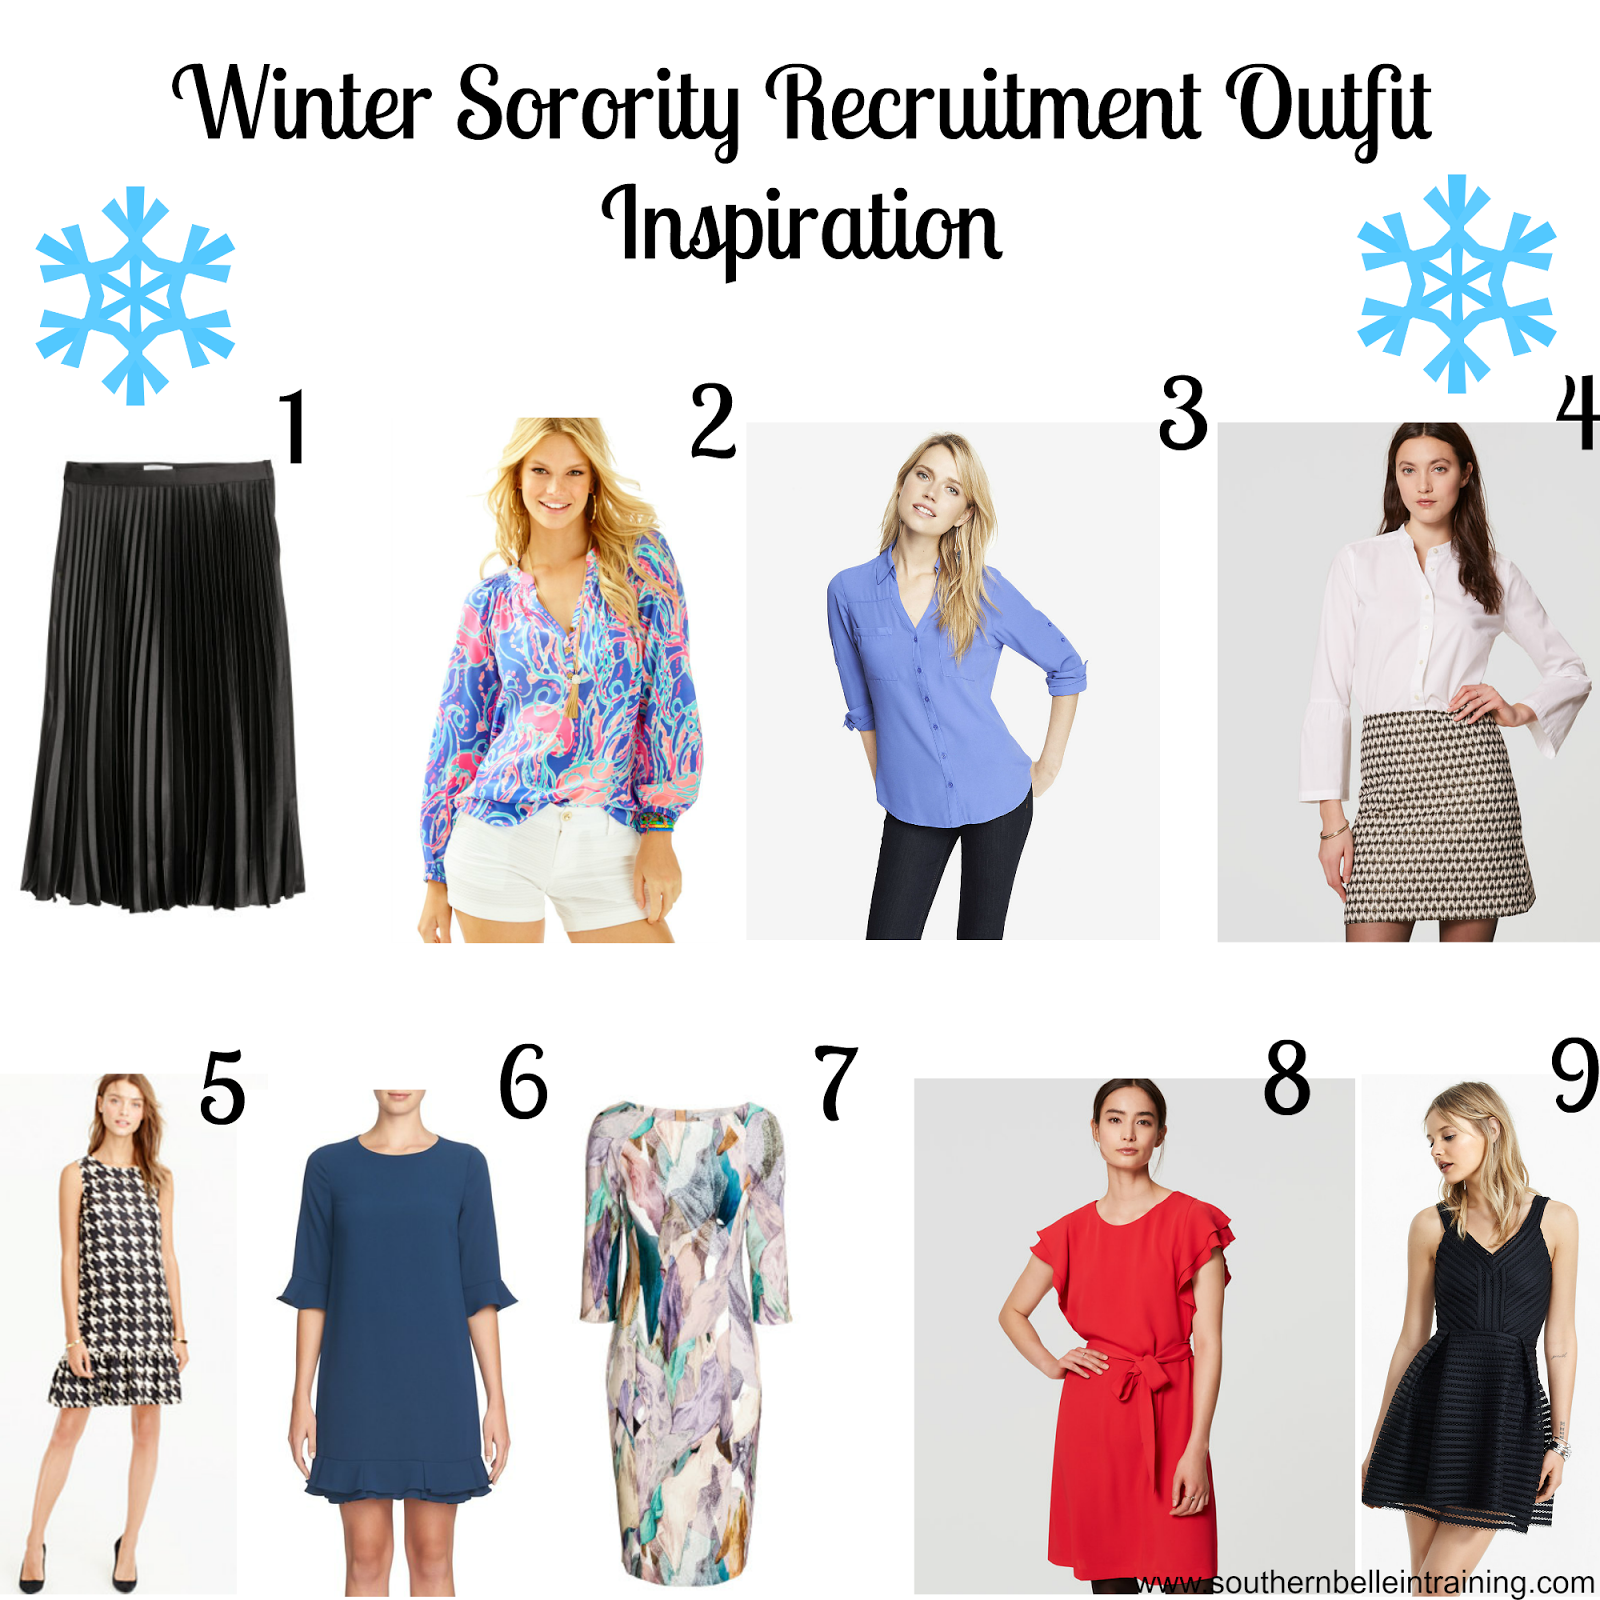 Winter Sorority Recruitment Outfit Ideas.  Southern Belle in Training